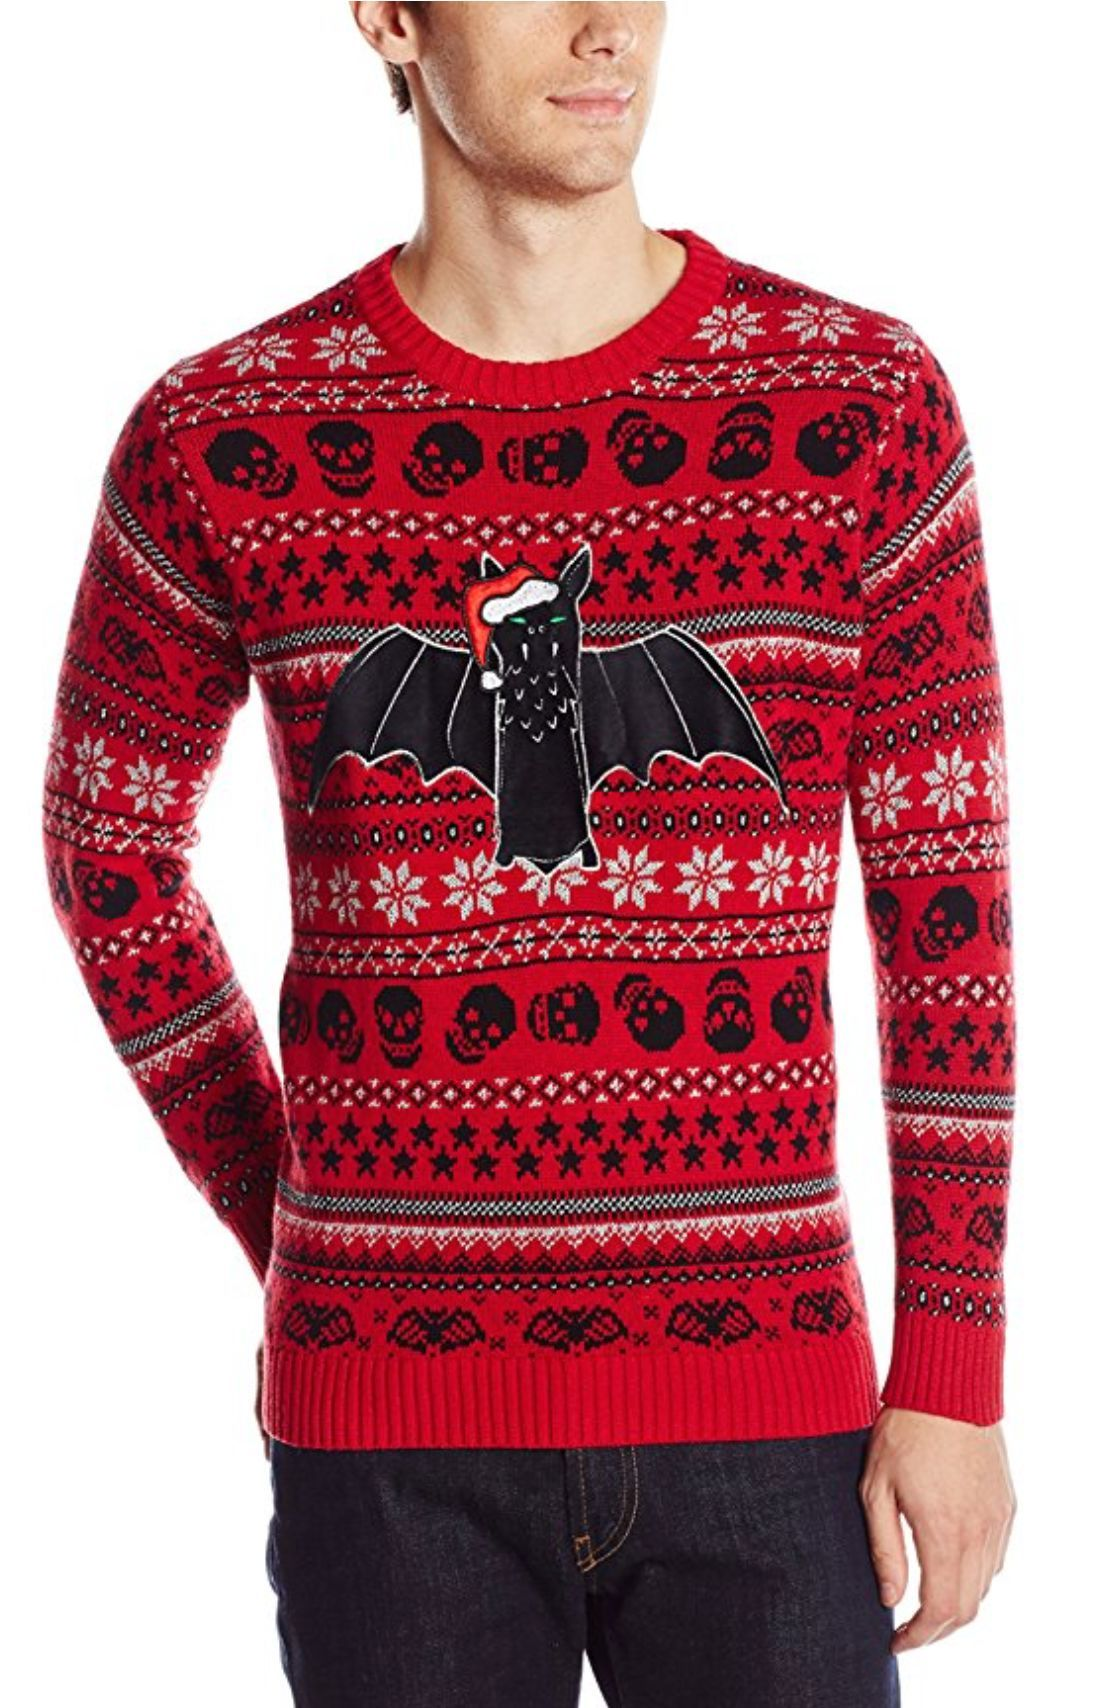 Blizzard Bay Mens Bats Ugly Christmas Sweater Products